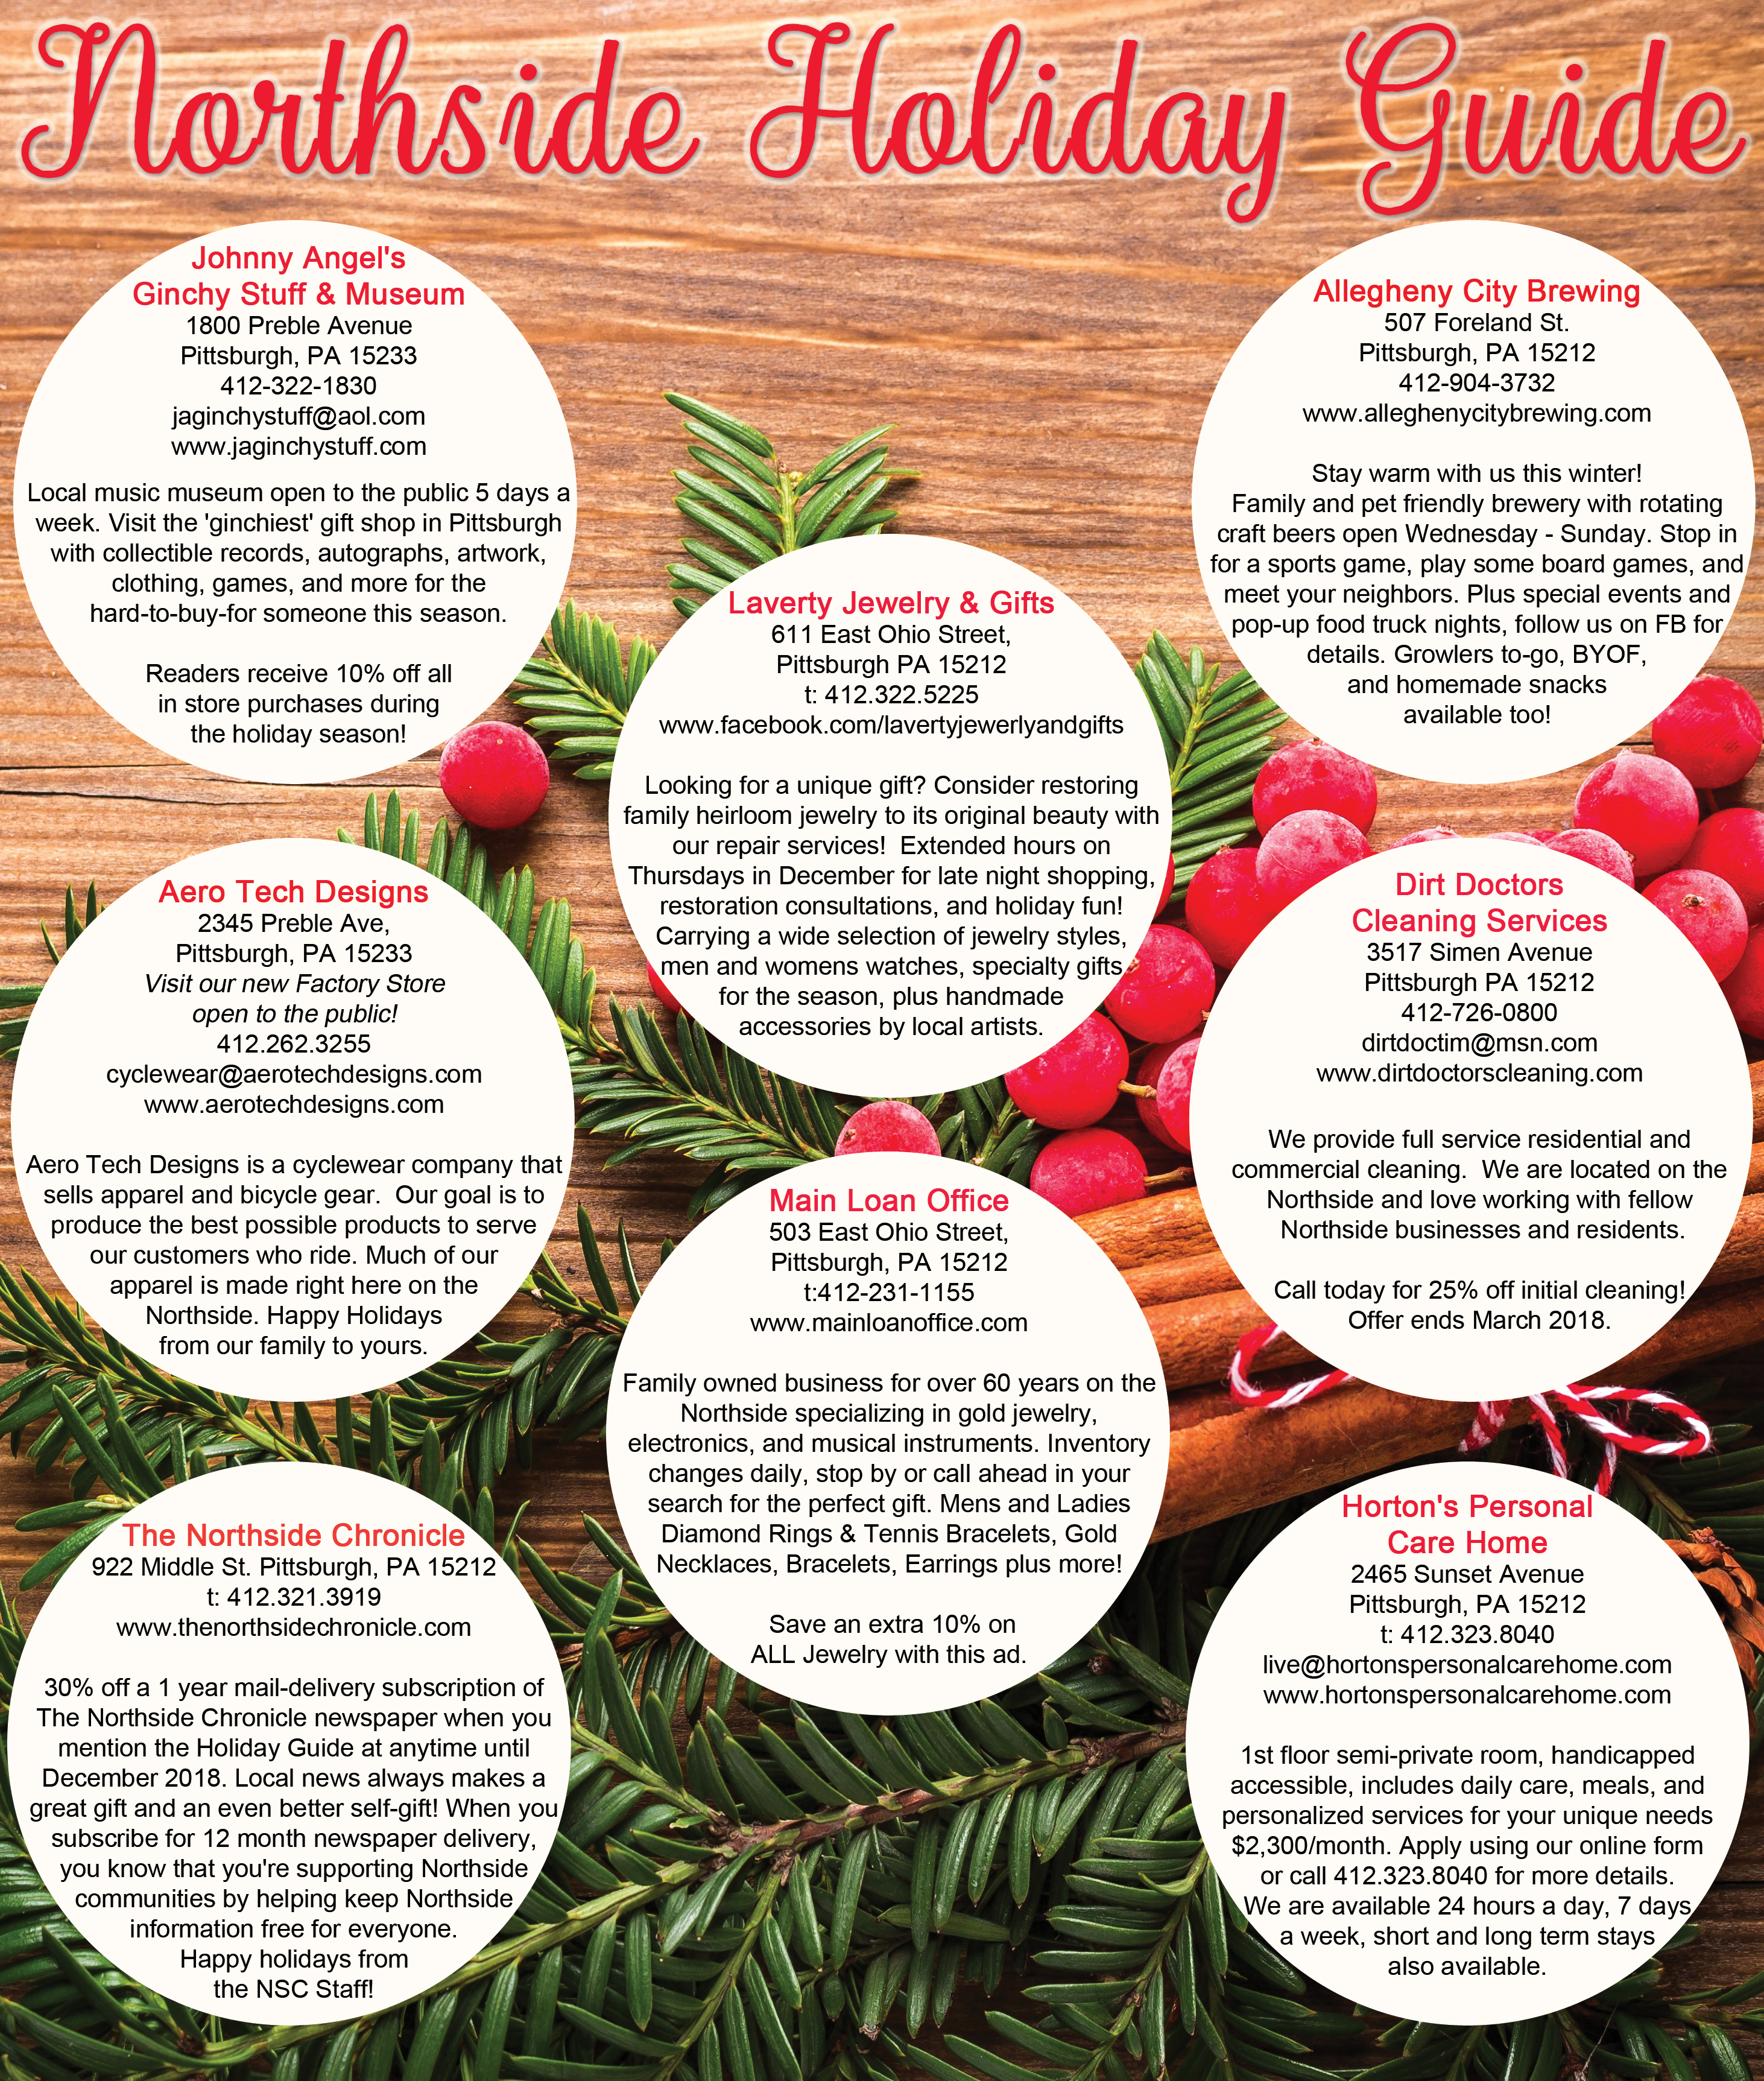 Holiday Guide | Northside Chronicle